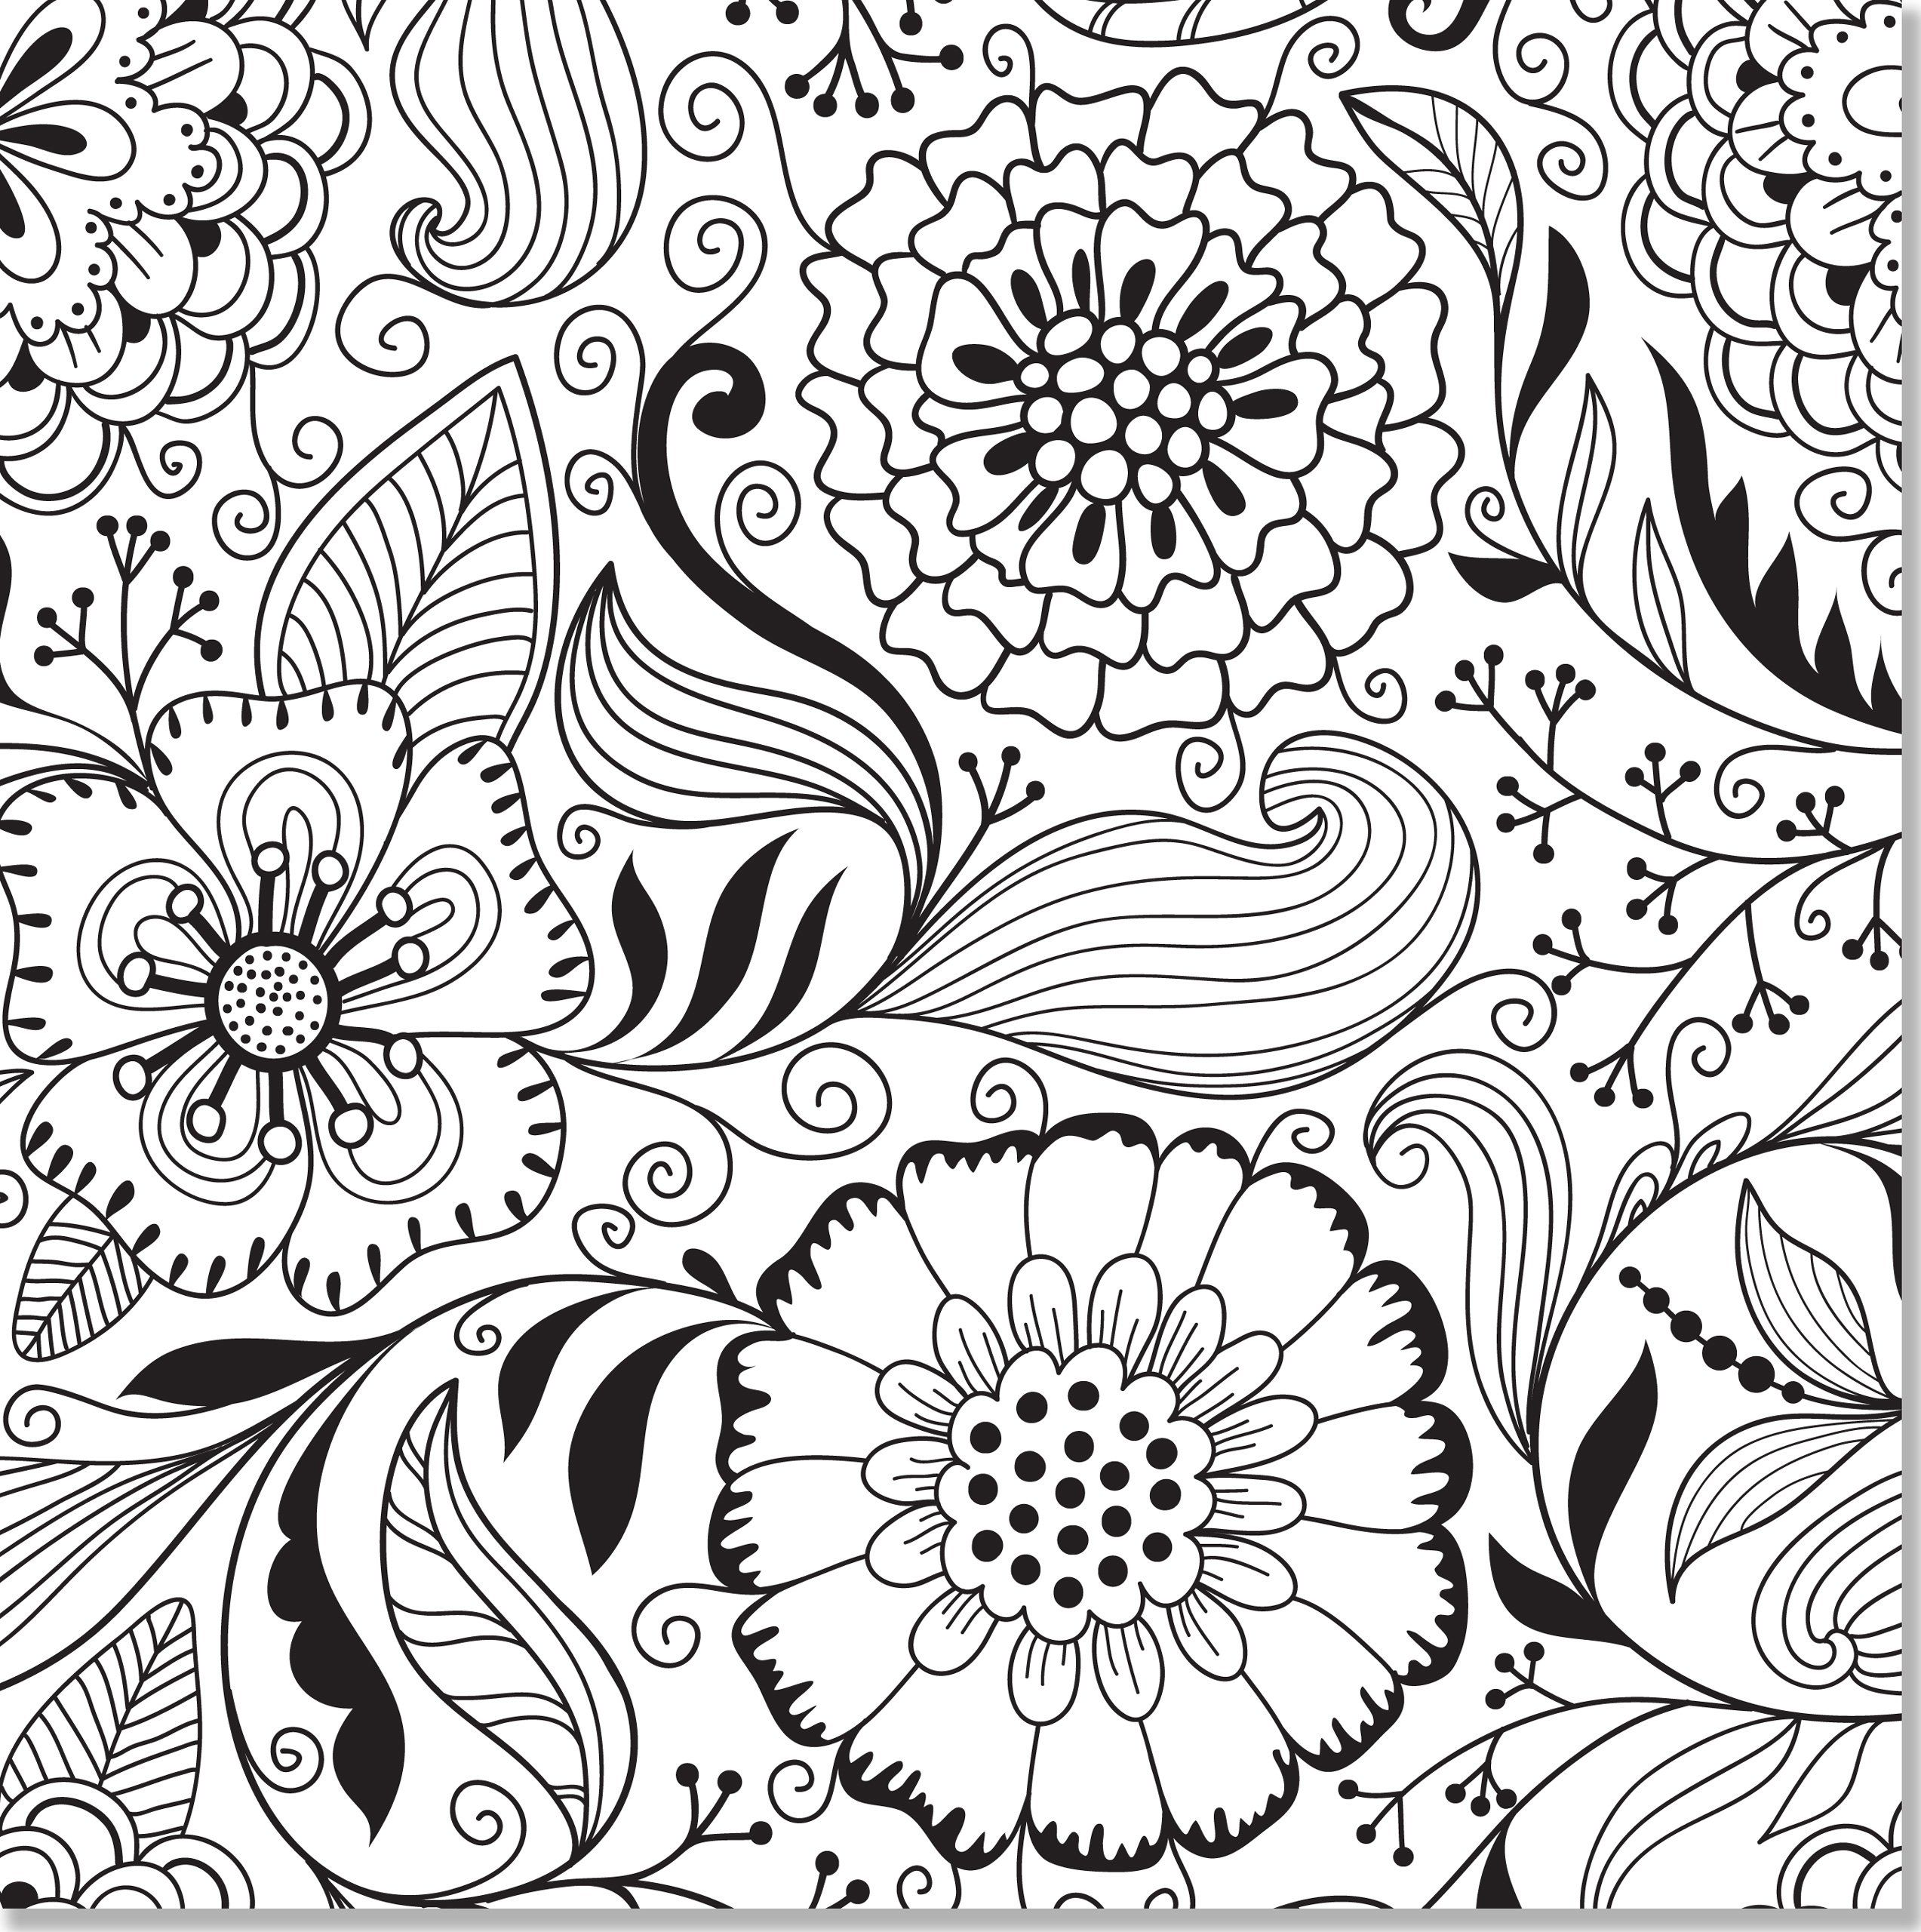 Free coloring pages kaleidoscope designs - Butterfly And Flower Coloring Pages For Adults Free Printable